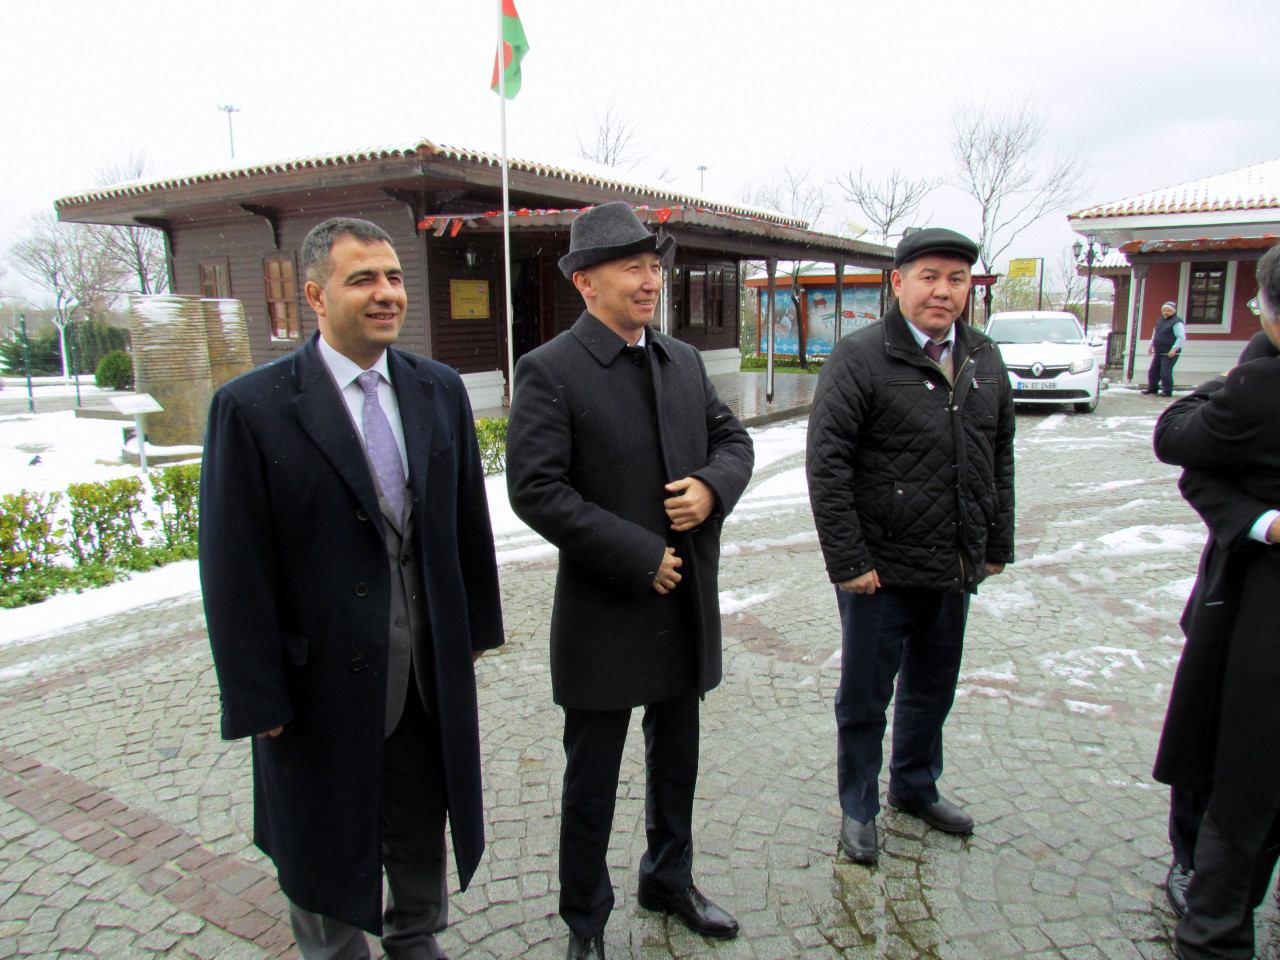 Visit from the Deputy Minister Chakiev to Culture Co. Galeri - 11. Resim